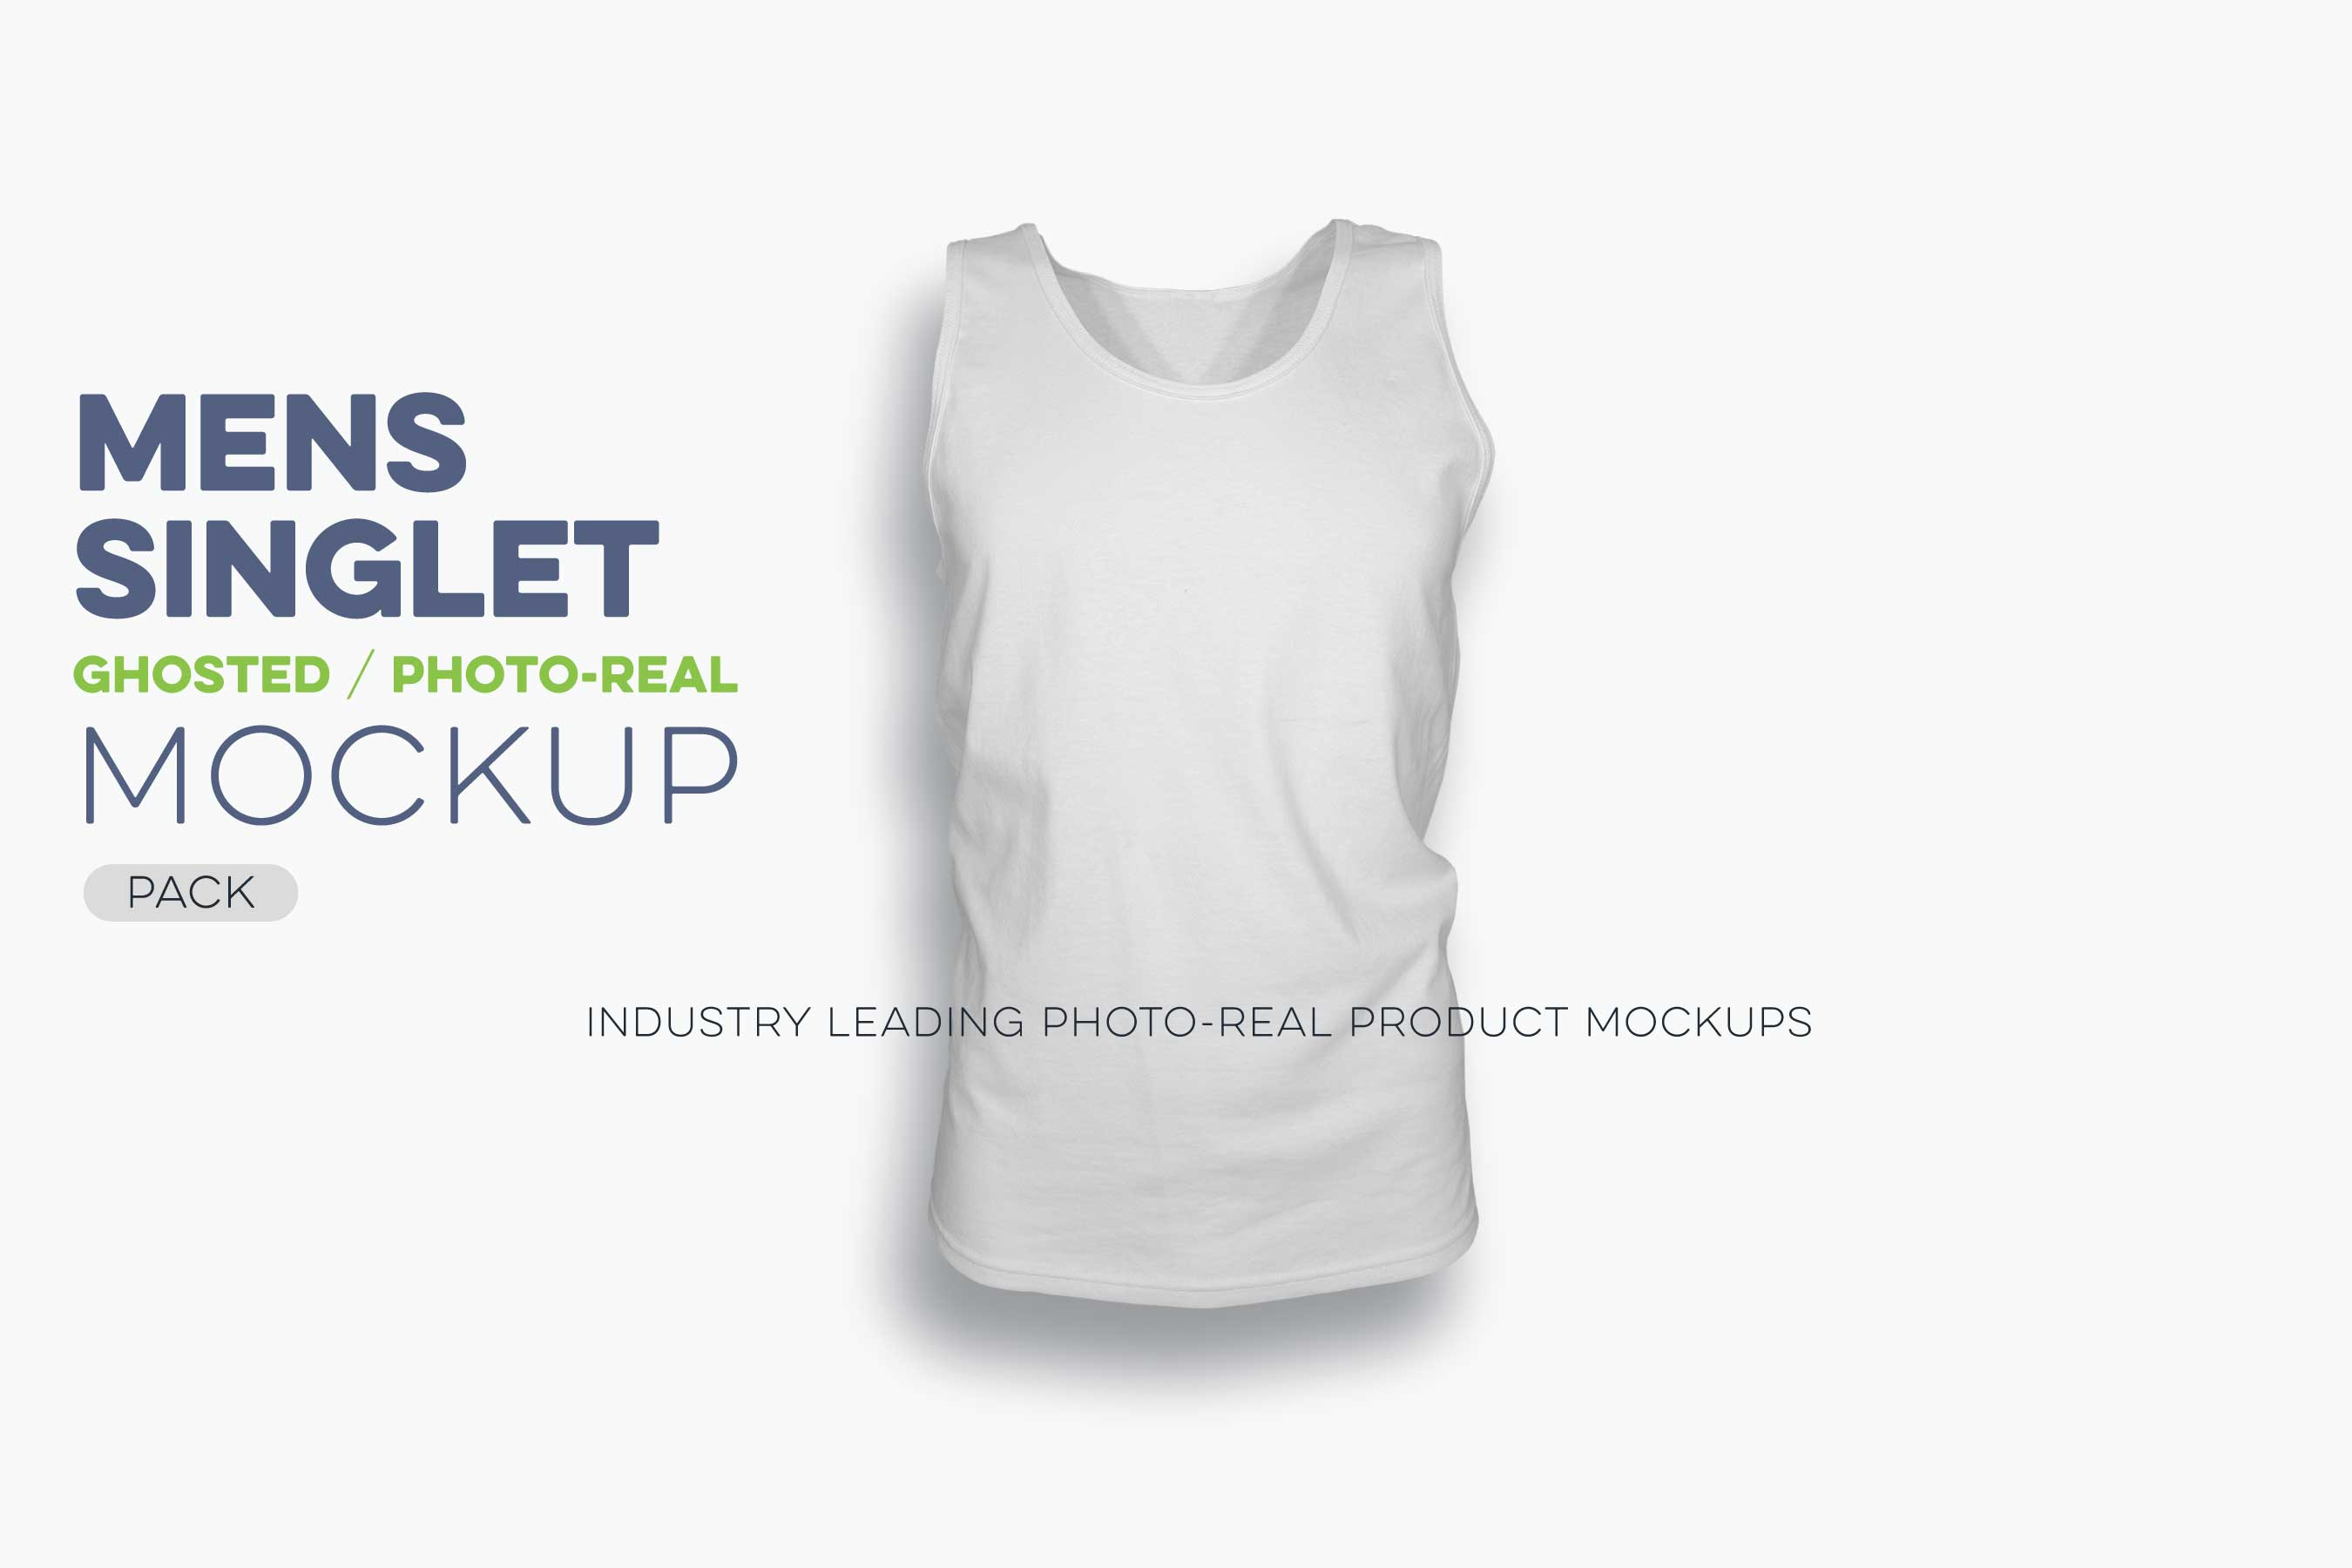 mens ghosted singlet mockup template N